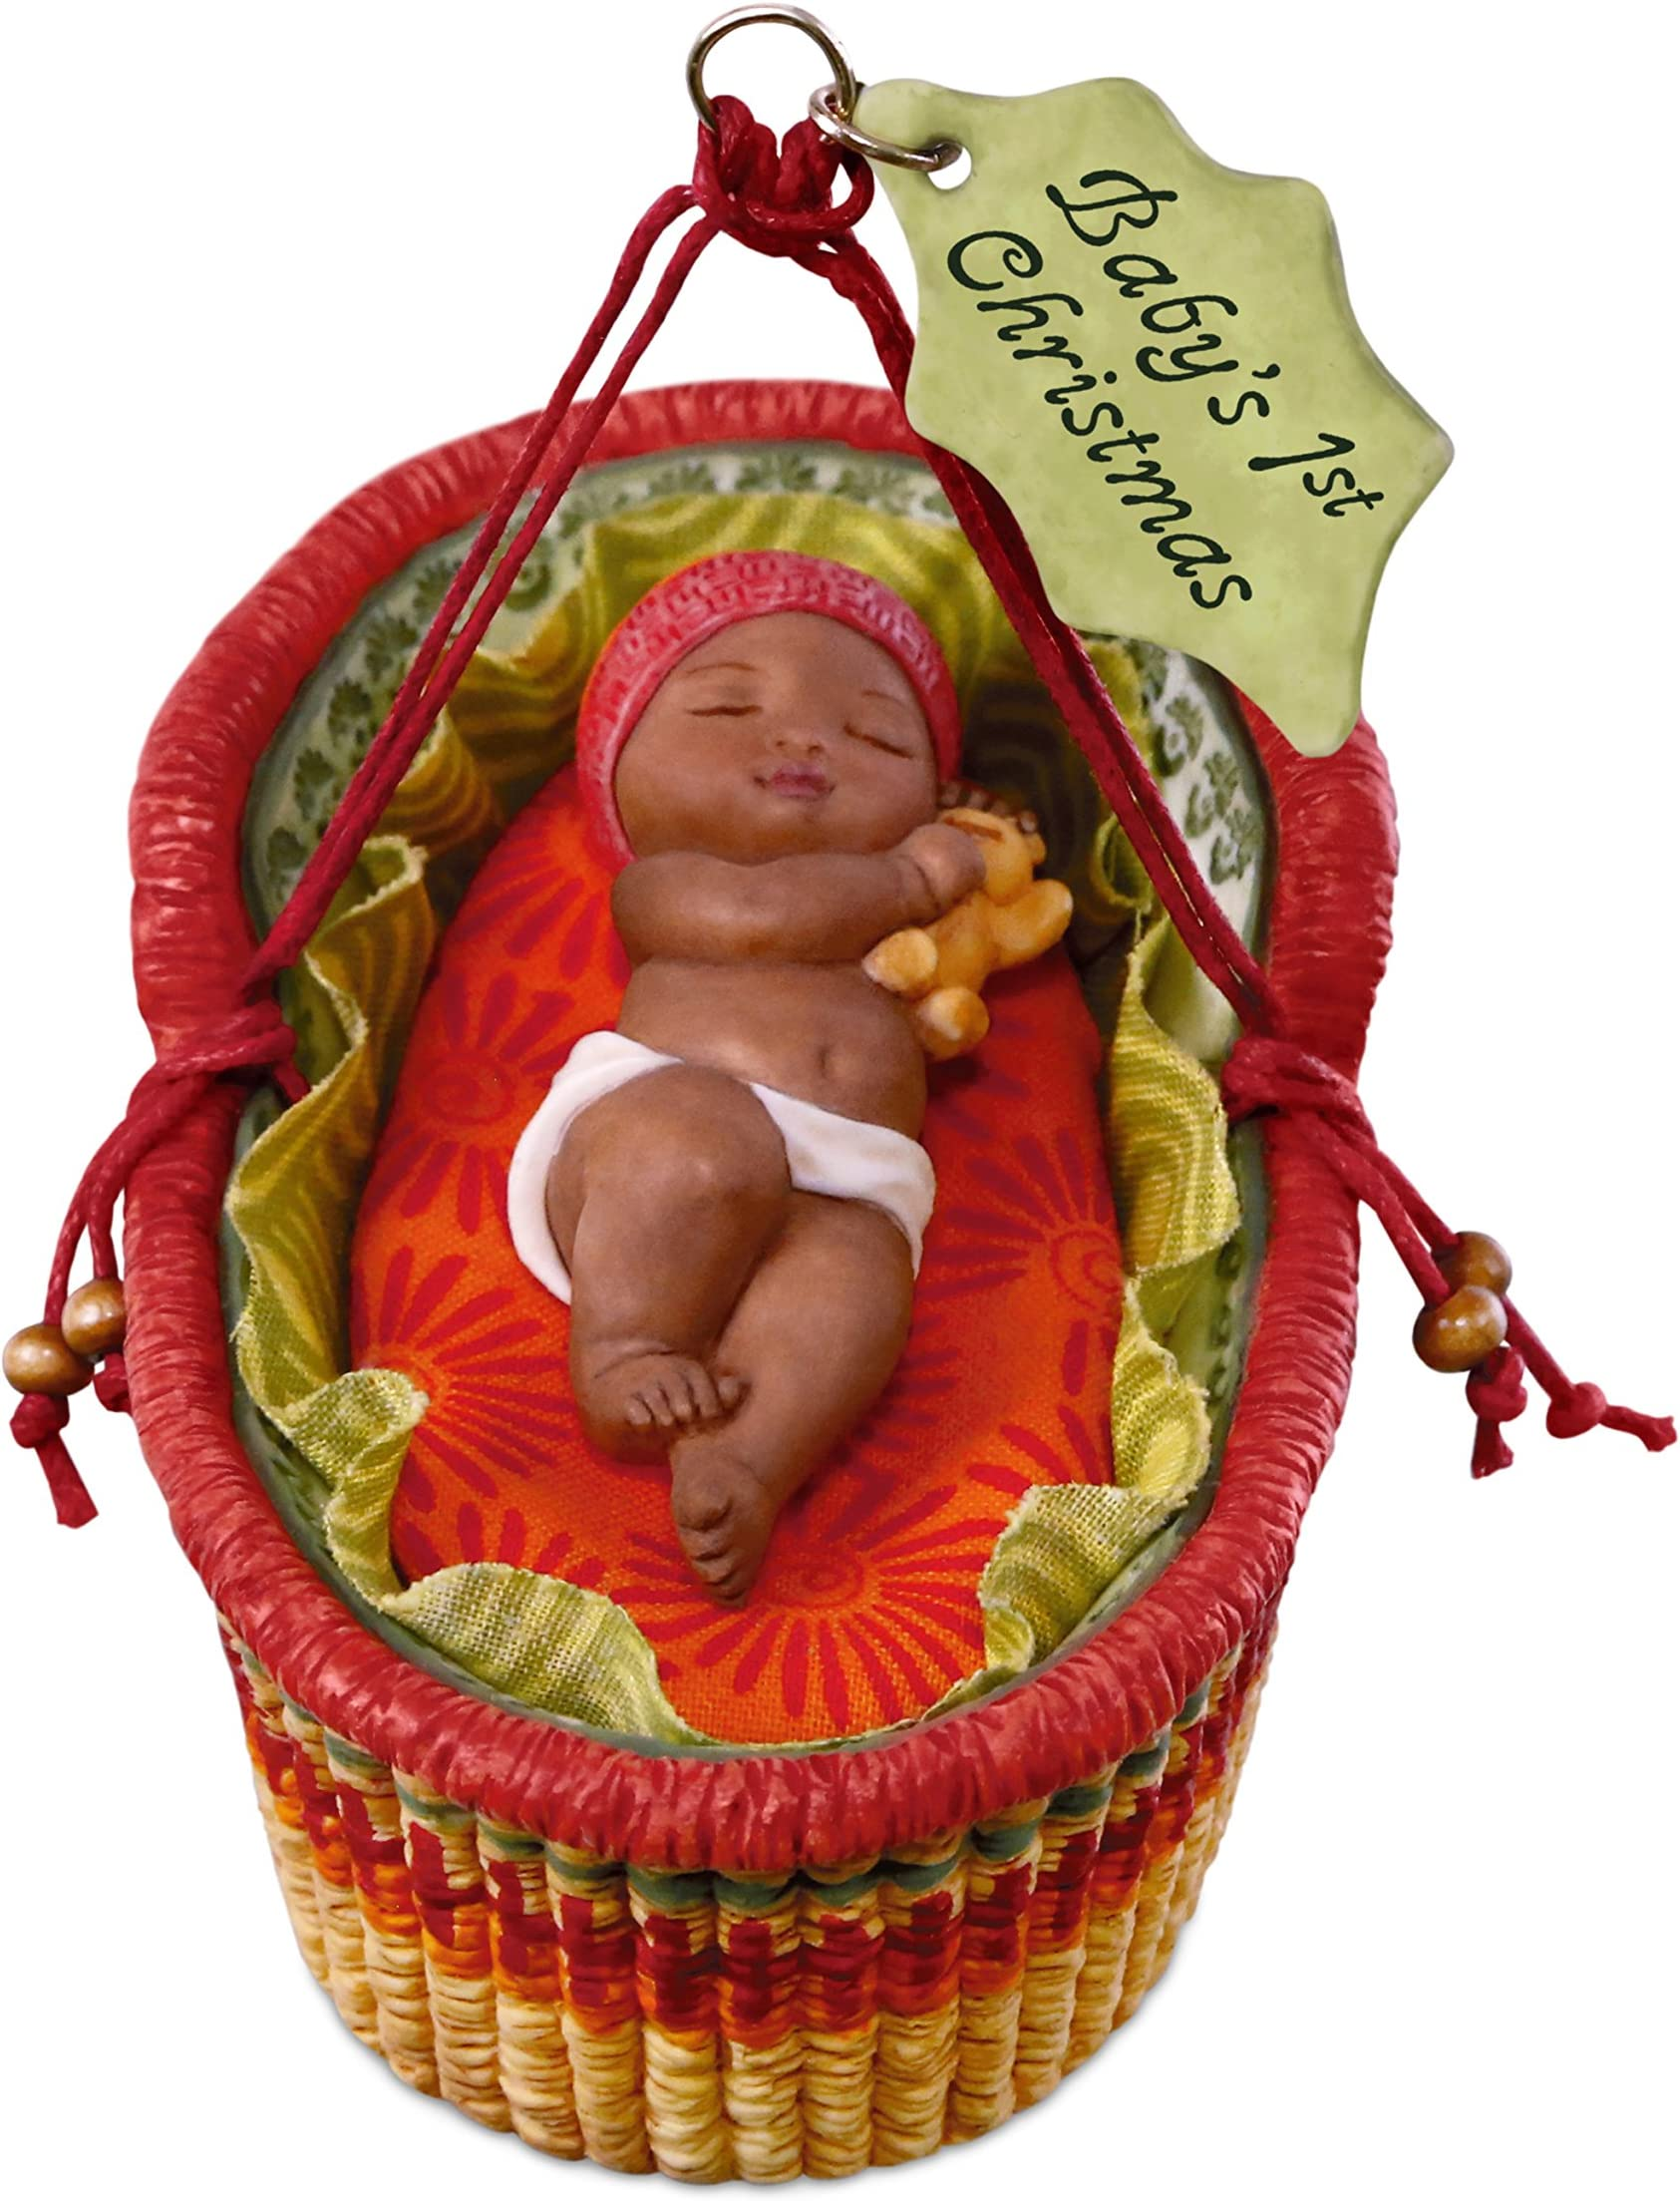 Hallmark 2013 African American Angel on Cloud Baby/'s First Christmas Ornament